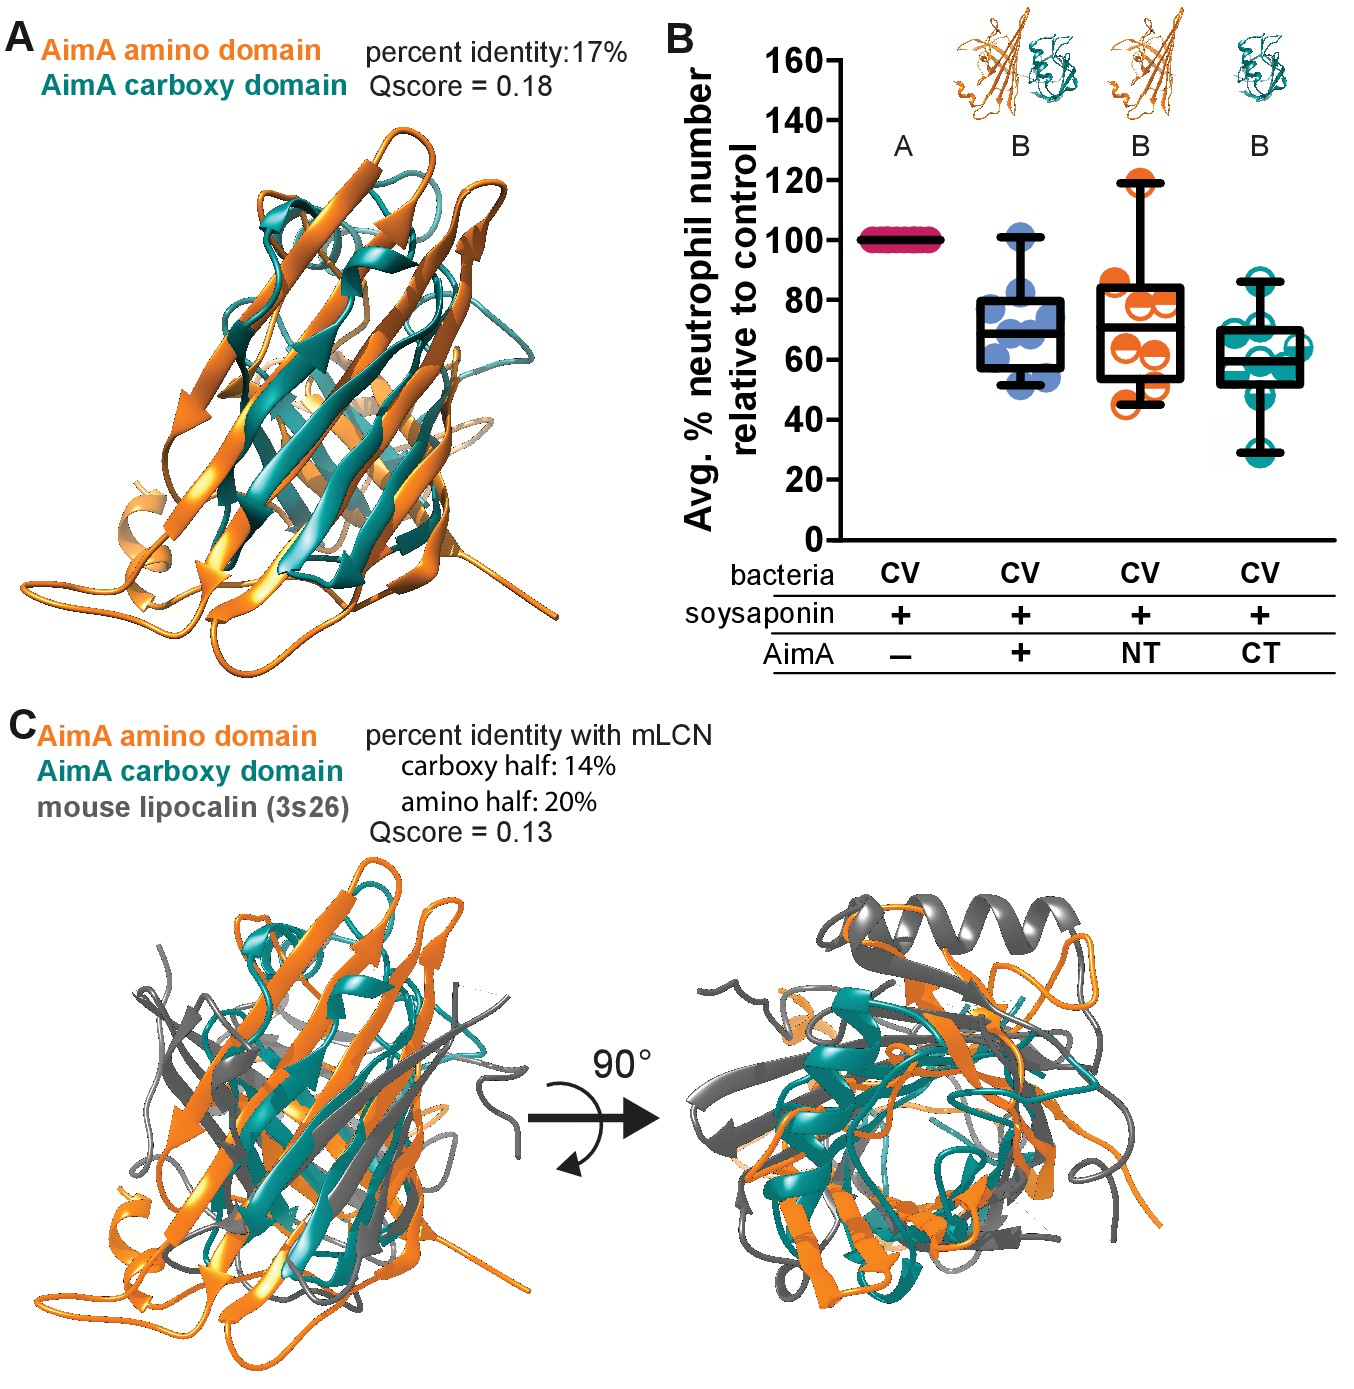 A bacterial immunomodulatory protein with lipocalin-like